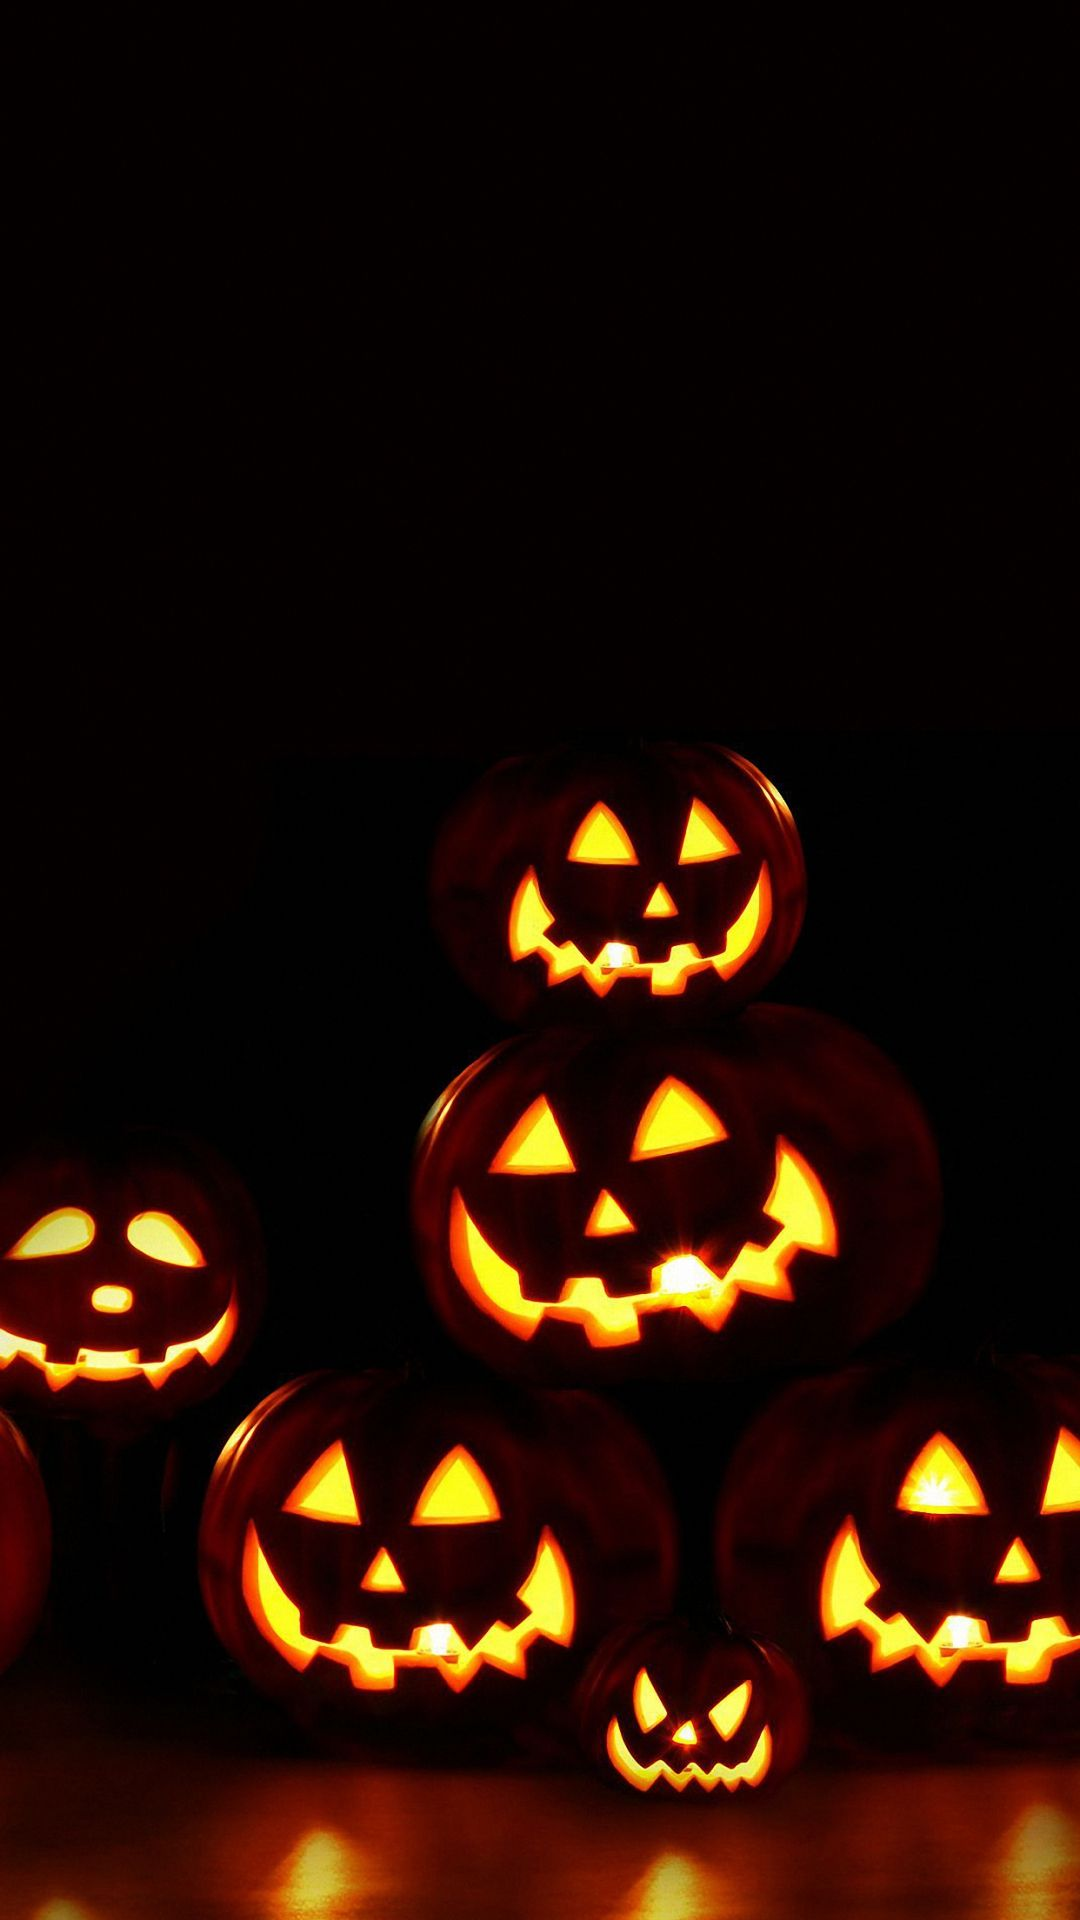 Hd Halloween Pumpkin Lights Wallpapers Holiday Mobile Background Halloween Wallpaper Iphone Halloween Wallpaper Halloween Wallpaper Backgrounds